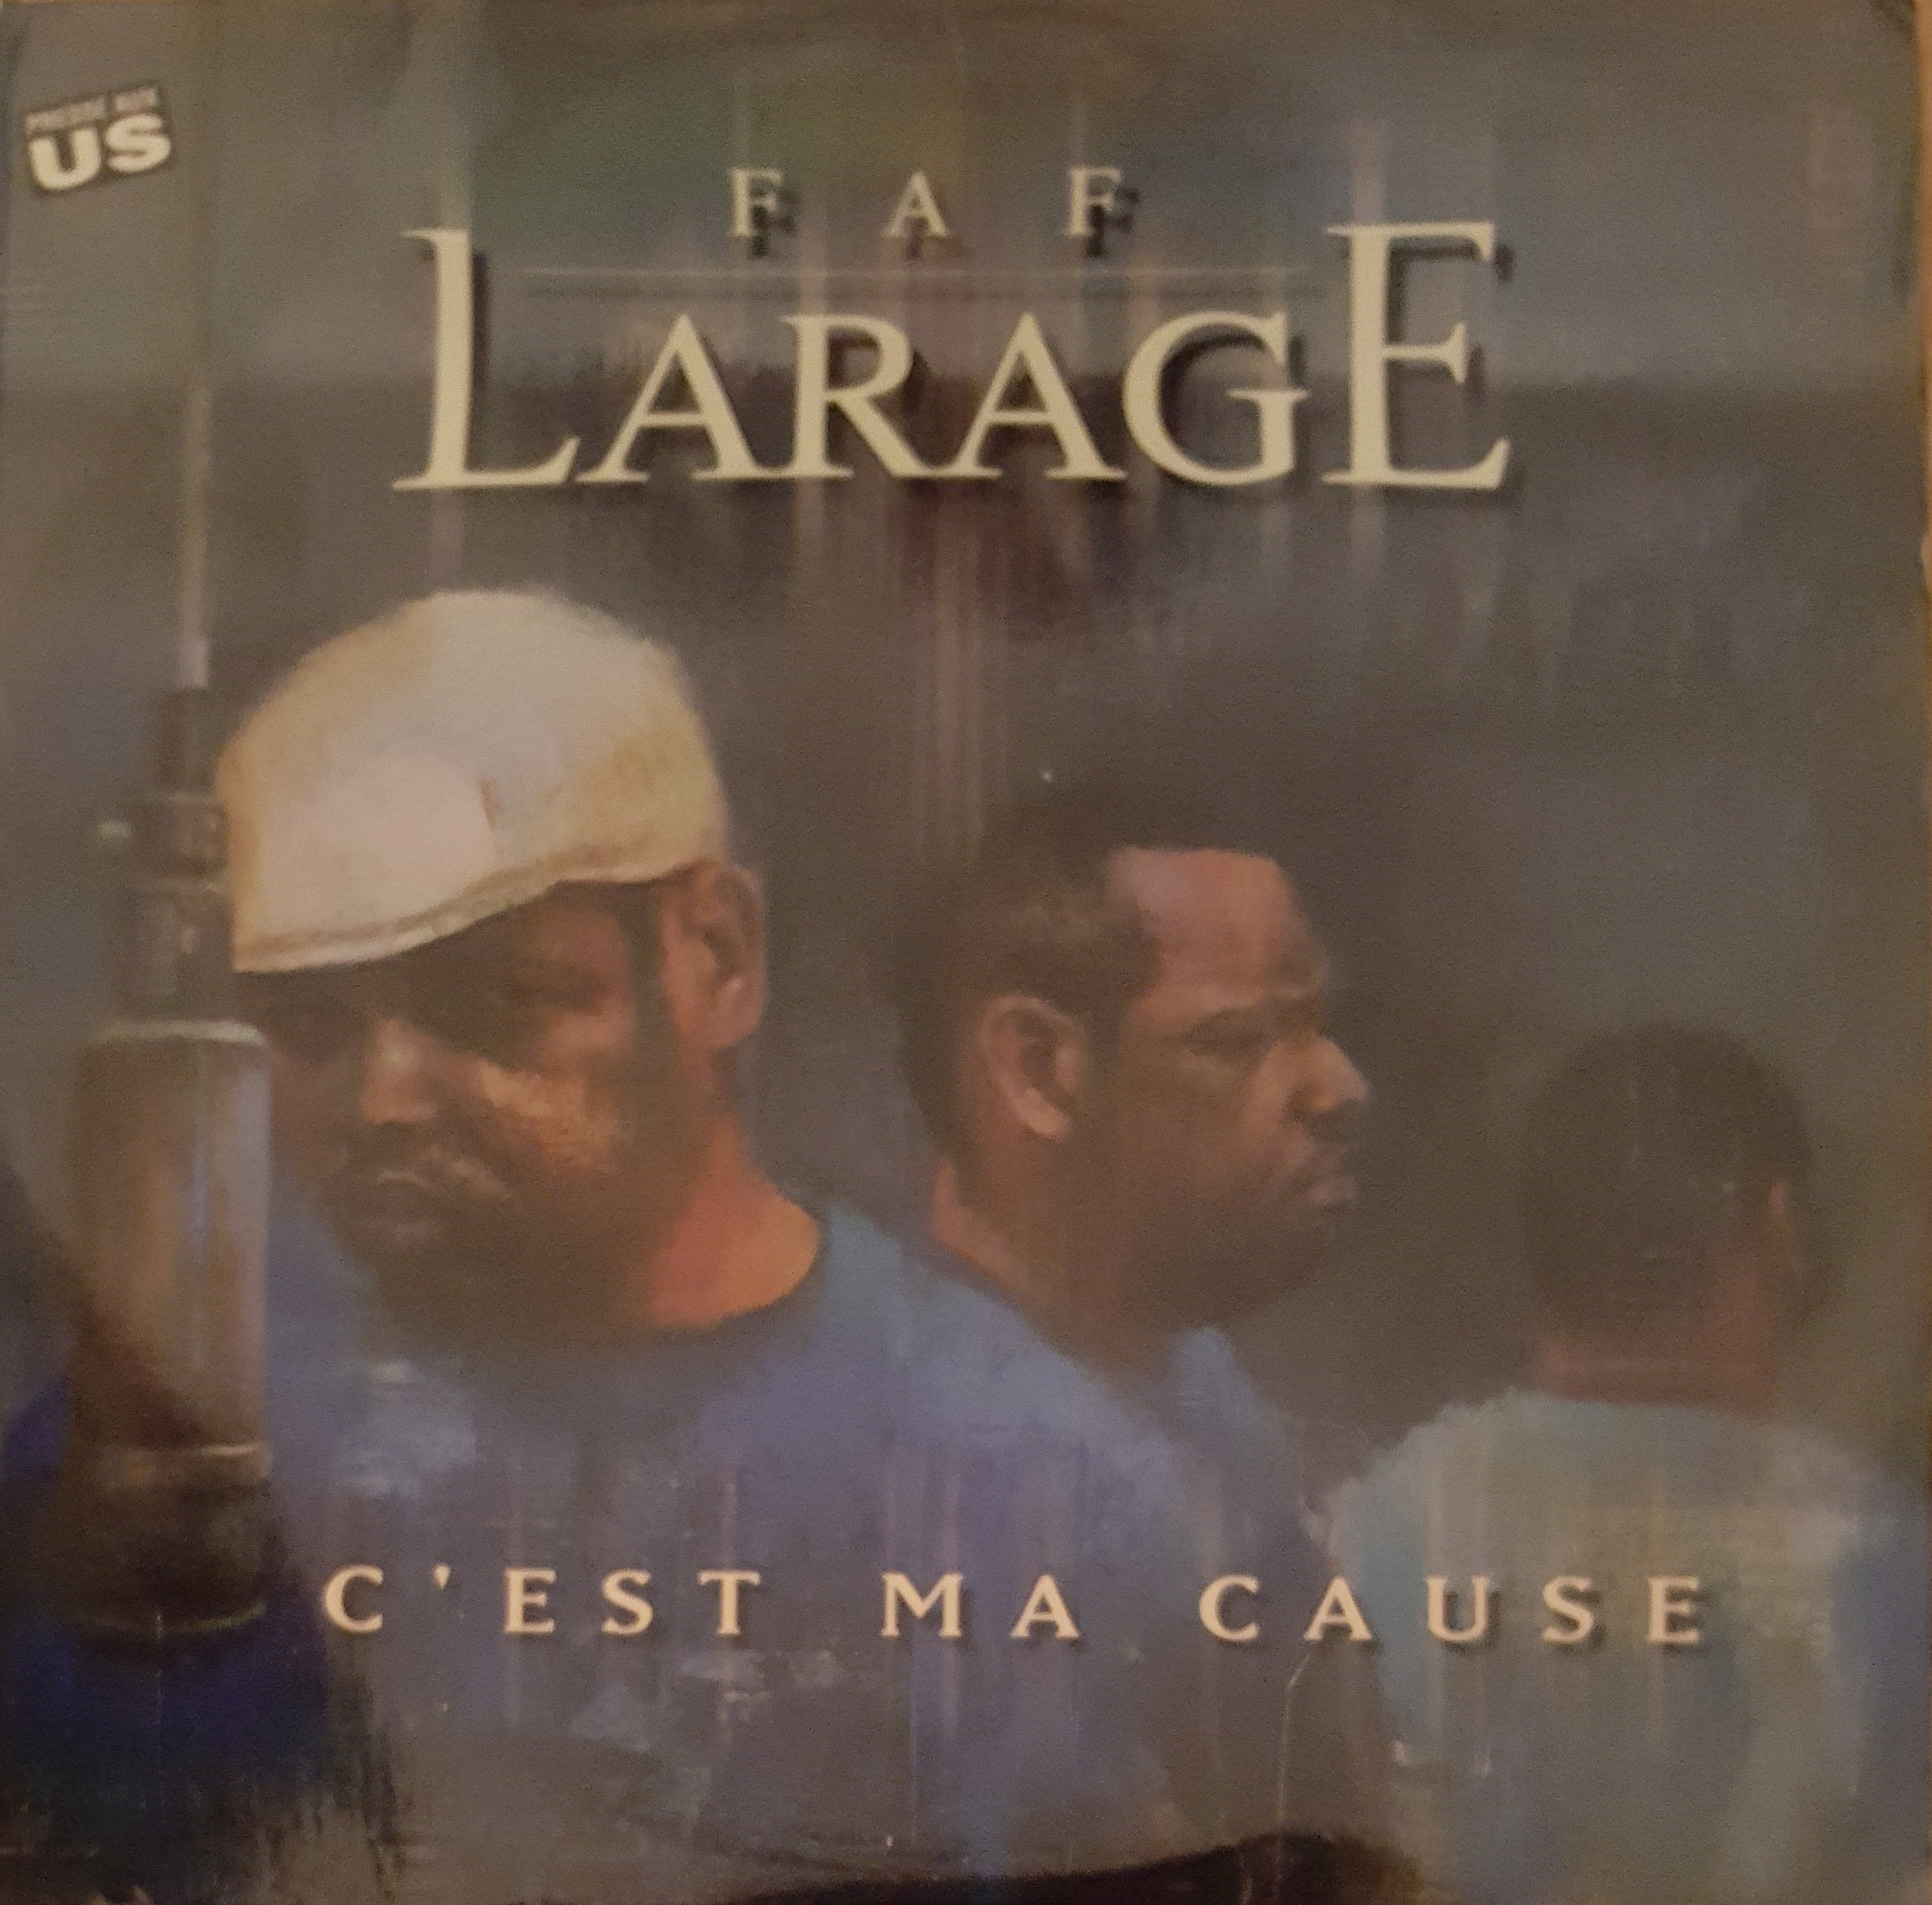 album faf larage cest ma cause